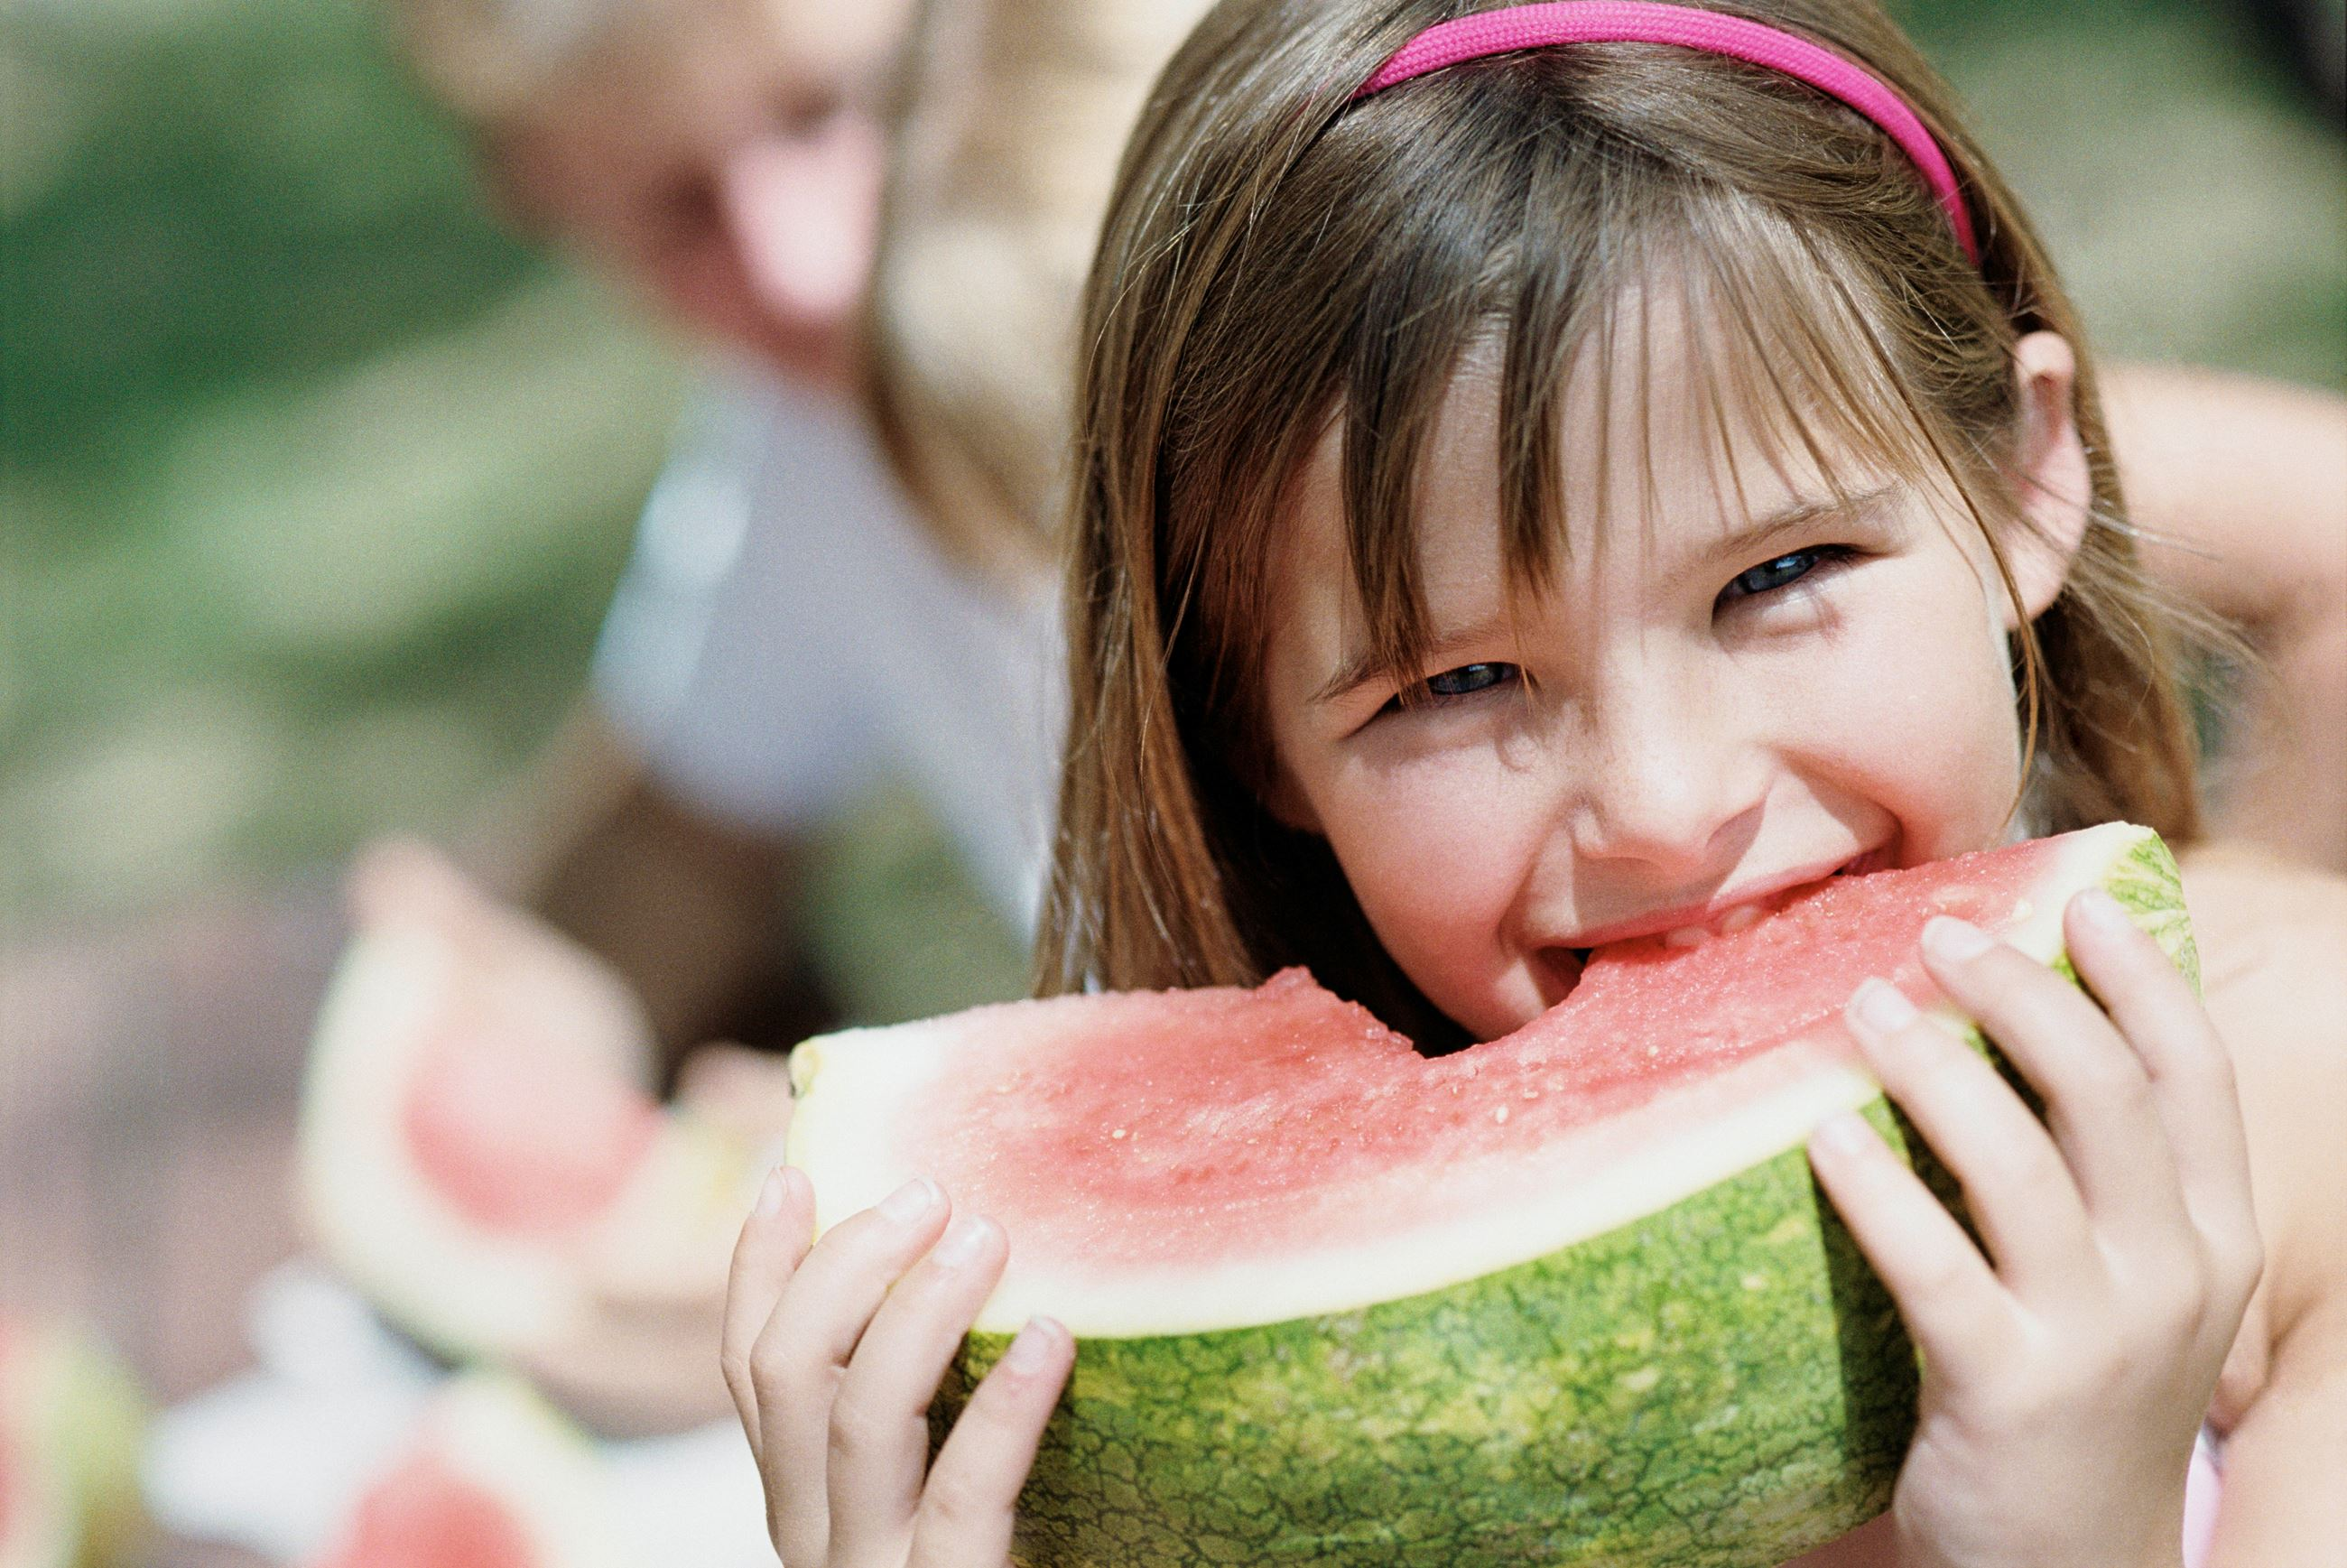 Girl eating Watermellon